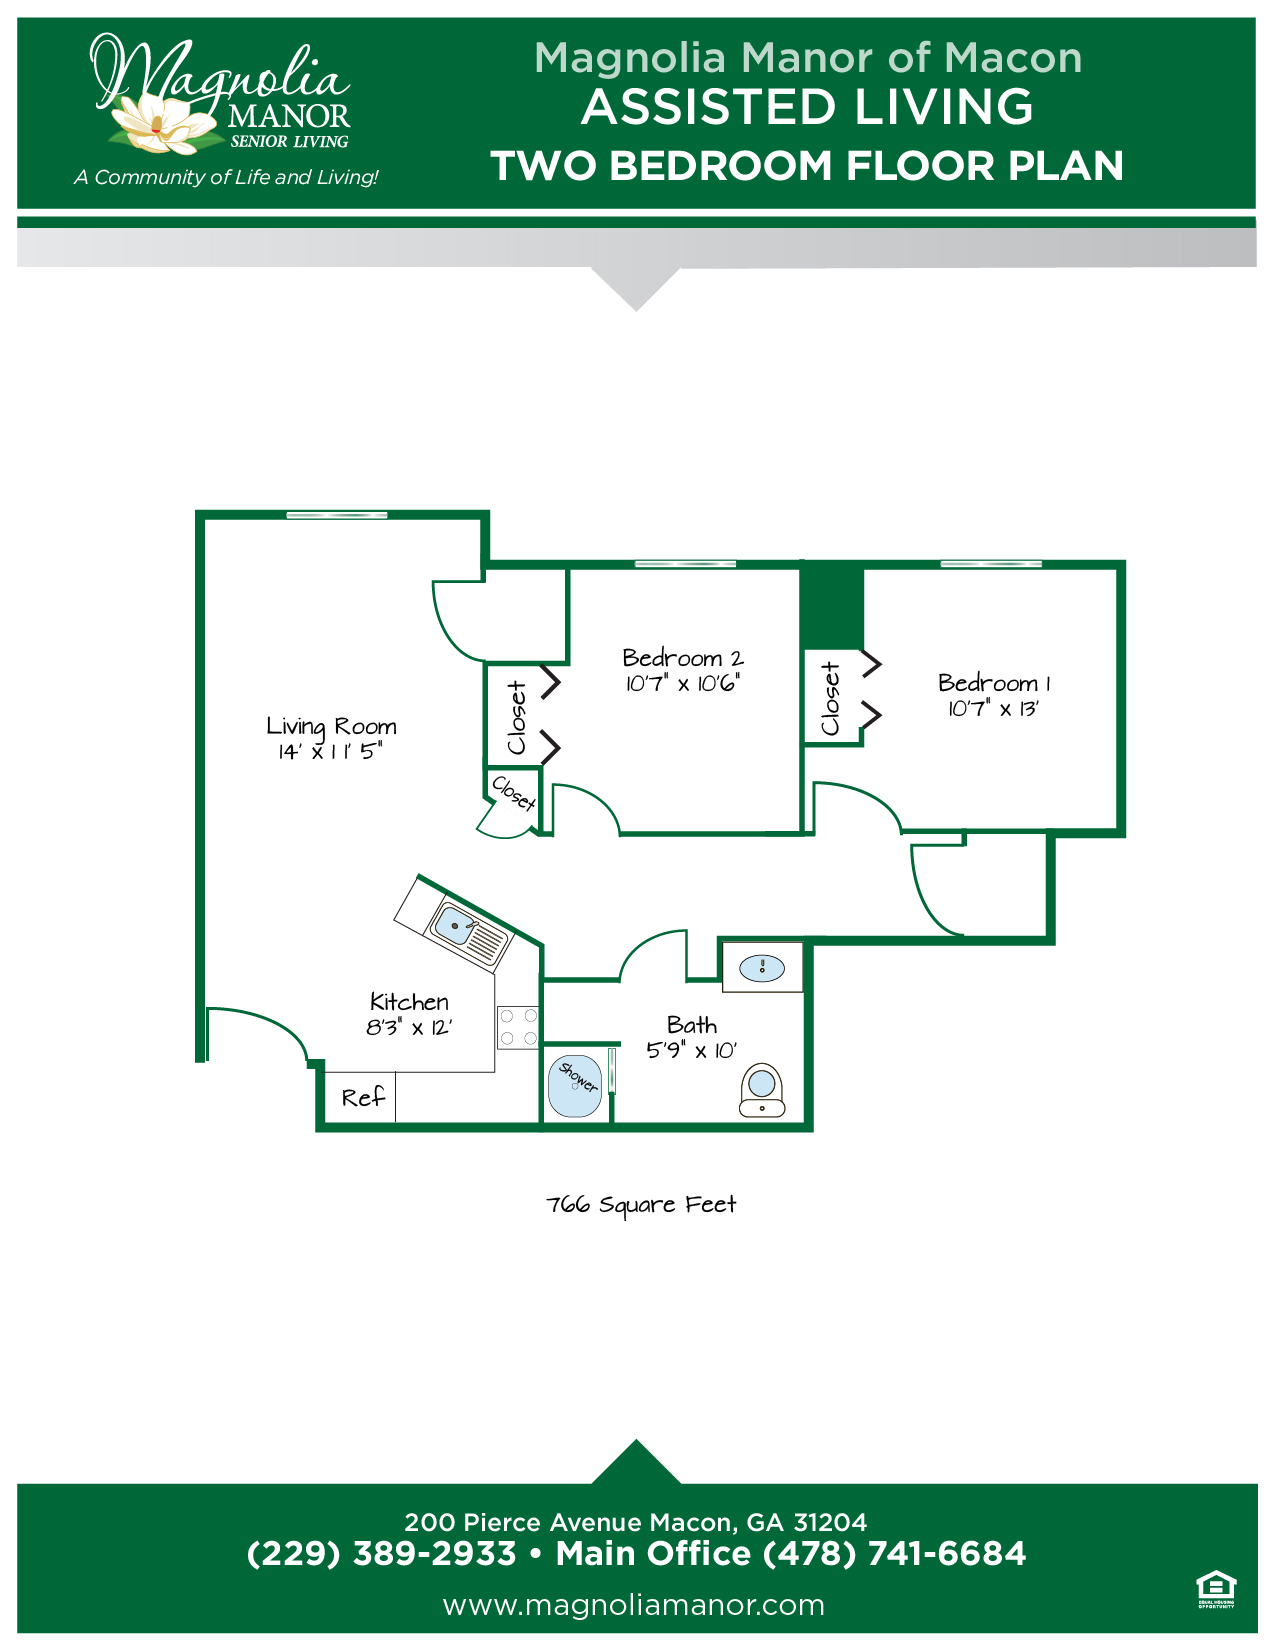 00344 MACON AL Floor Plan two Bedroom-01